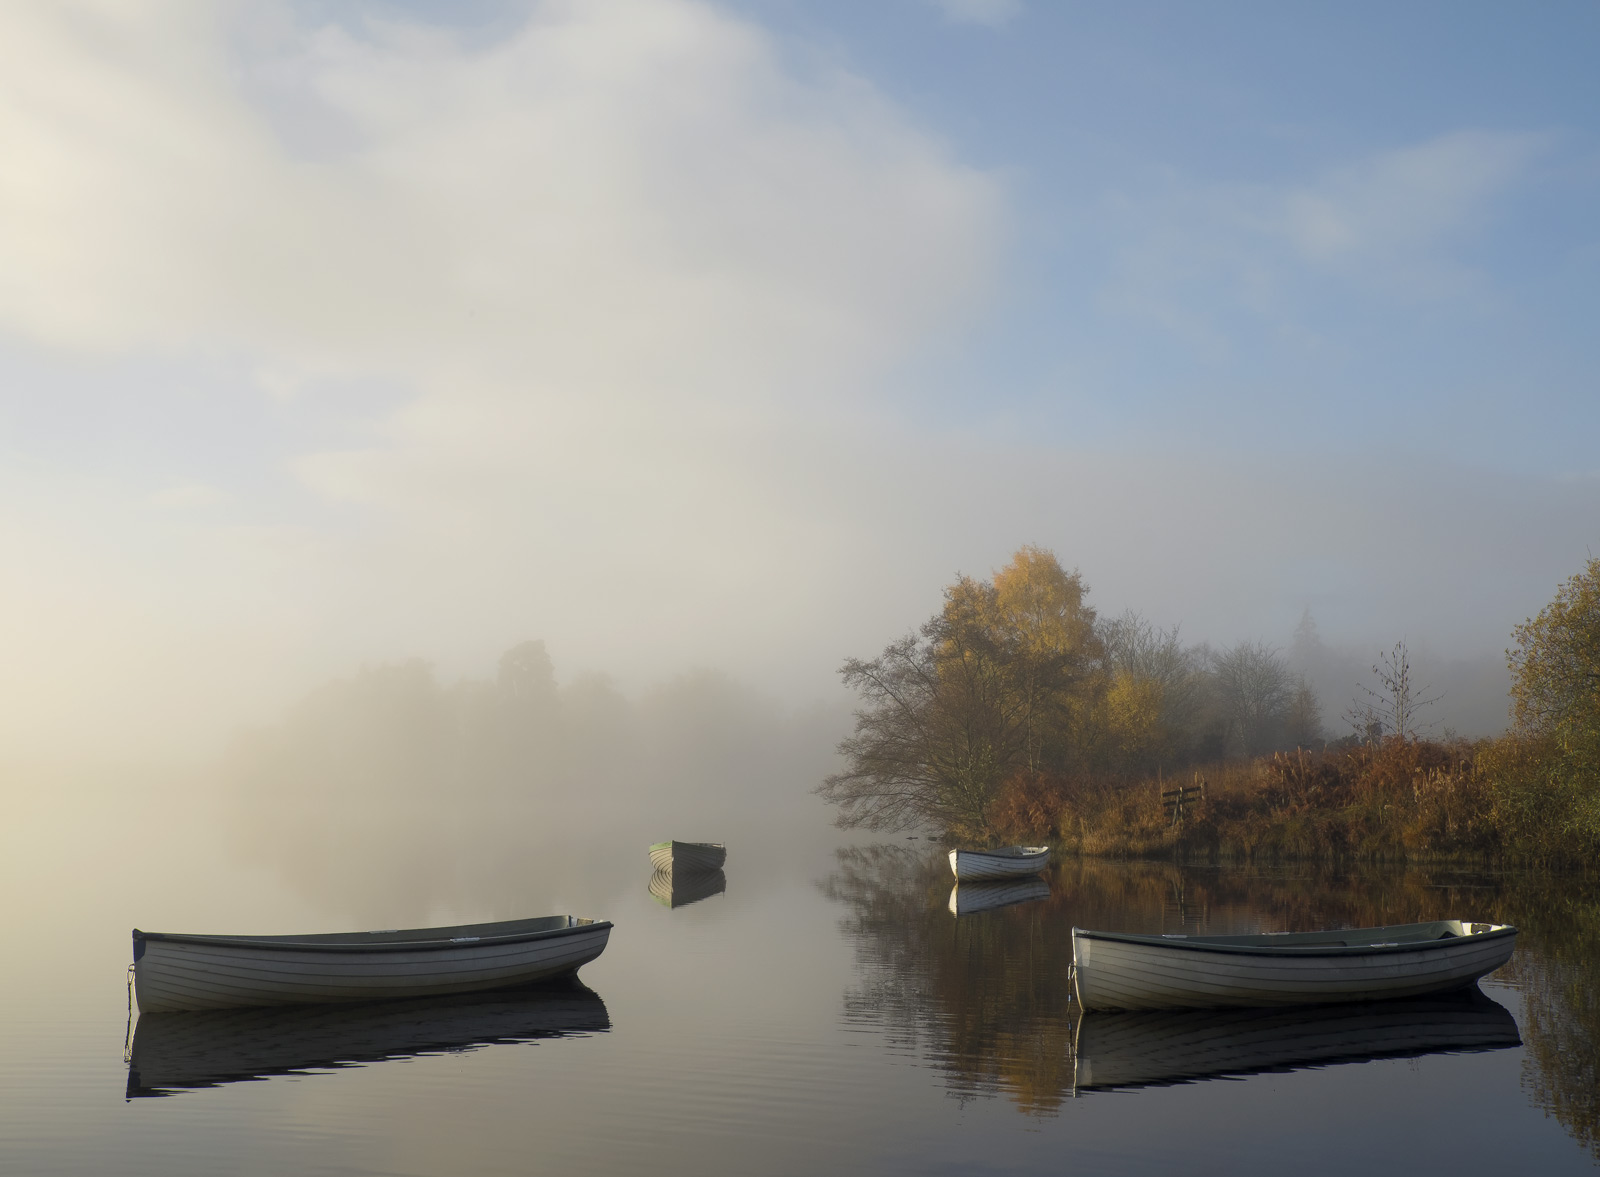 Misty Corner 3, Loch Rusky, Trossachs, Scotland, delightful communual, meeting, blue, row boats, angling, autumn, mist, , photo